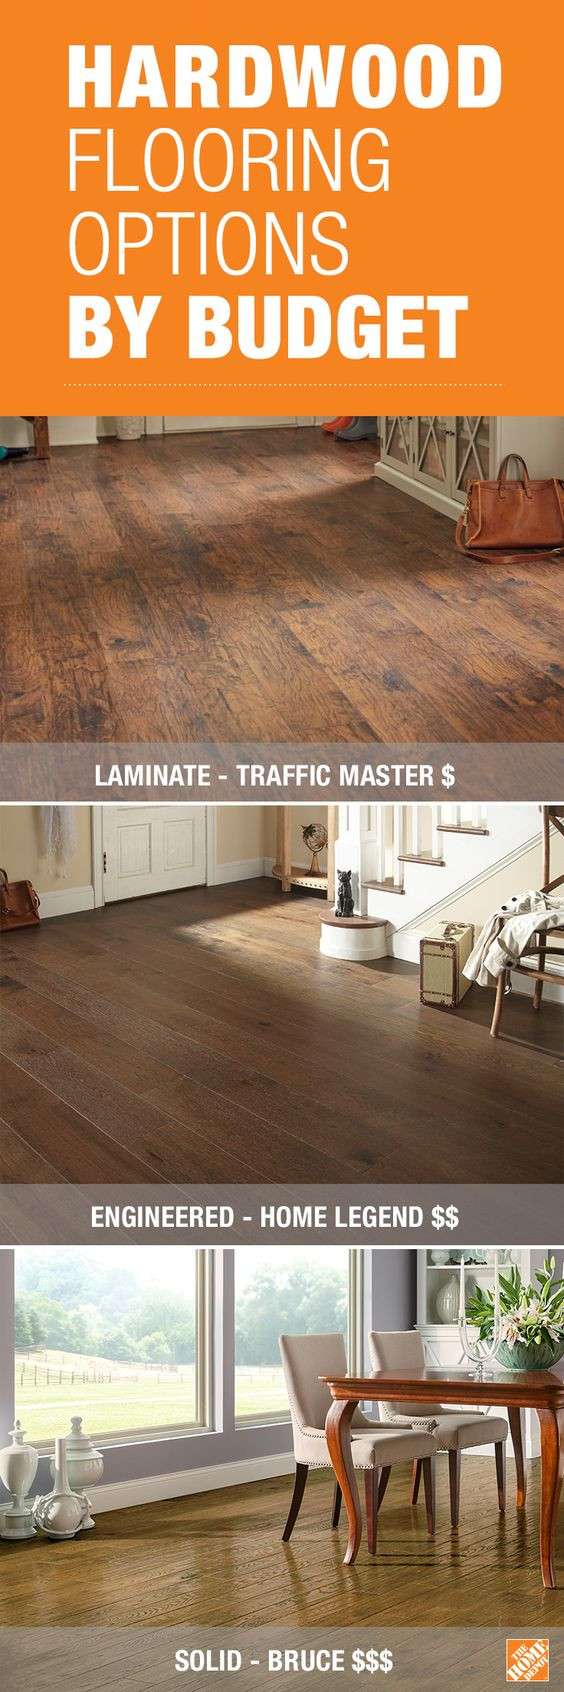 how to install fake hardwood floors of no matter your budget with todays flooring you have several good throughout no matter your budget with todays flooring you have several good options the new types of laminate flooring give you an authentic wood look thats very